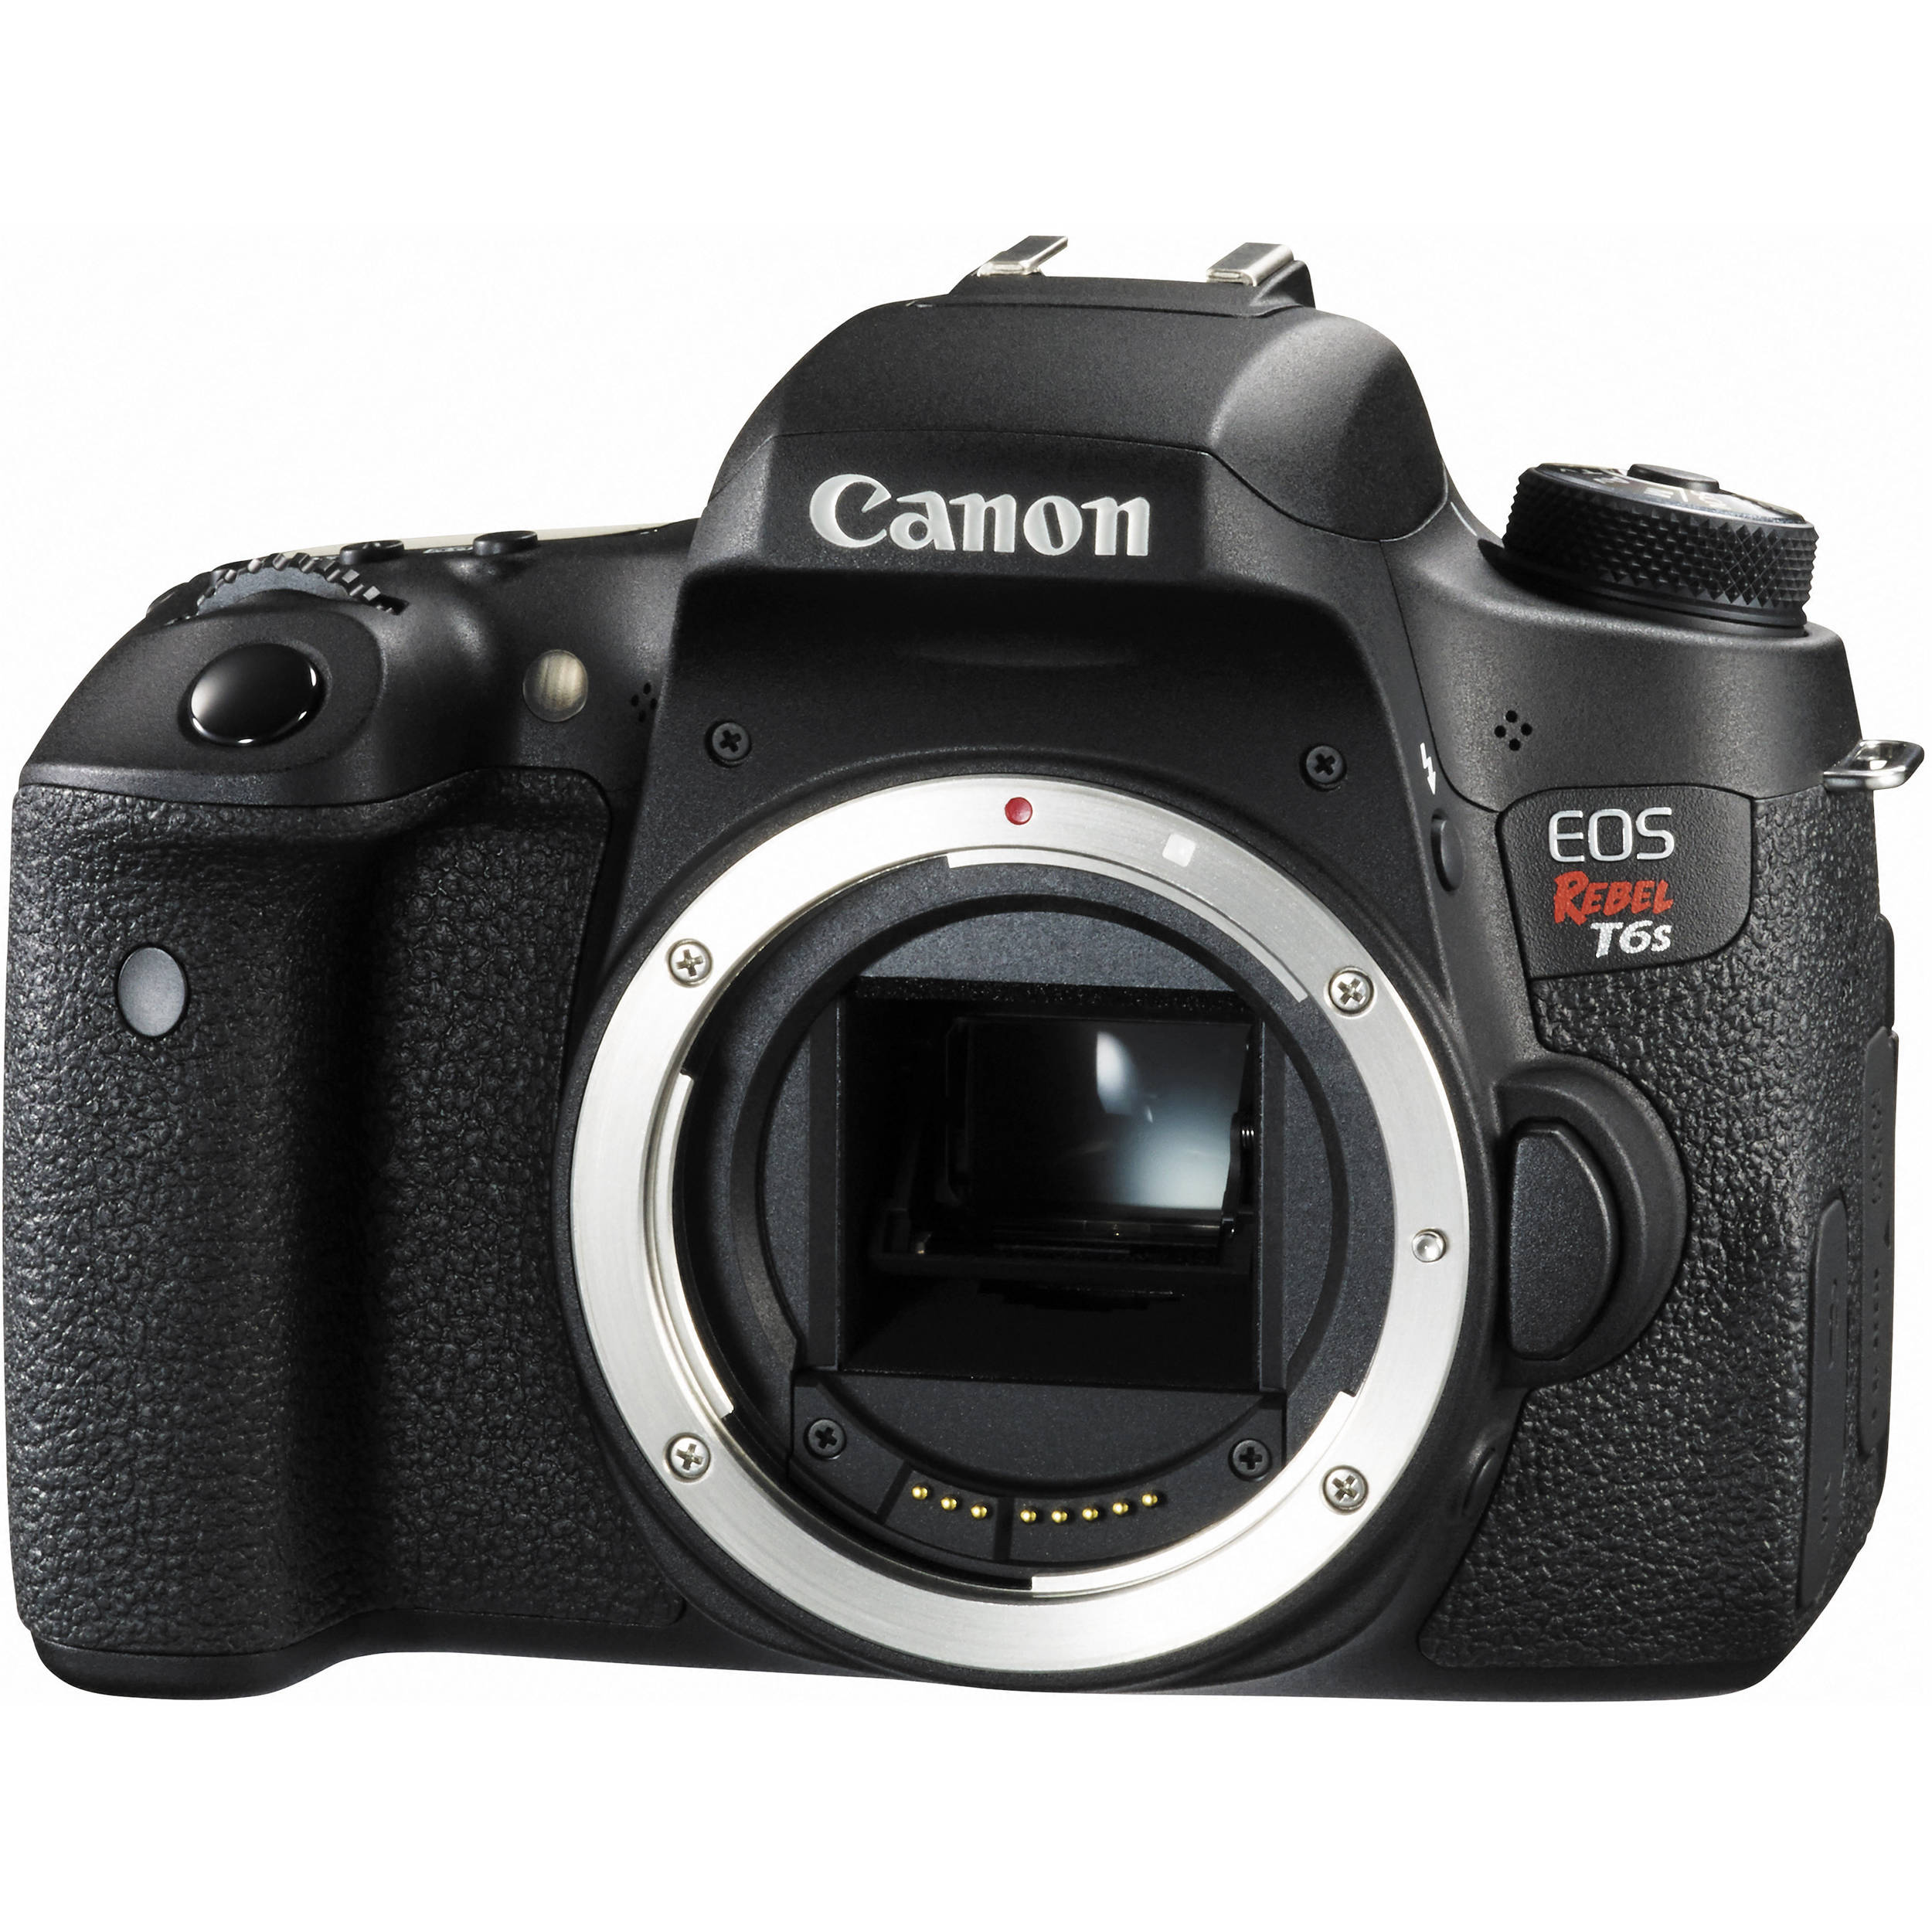 Camera Good First Dslr Camera 9 recommended entry level dslr cameras bh explora canon eos rebel t6s camera